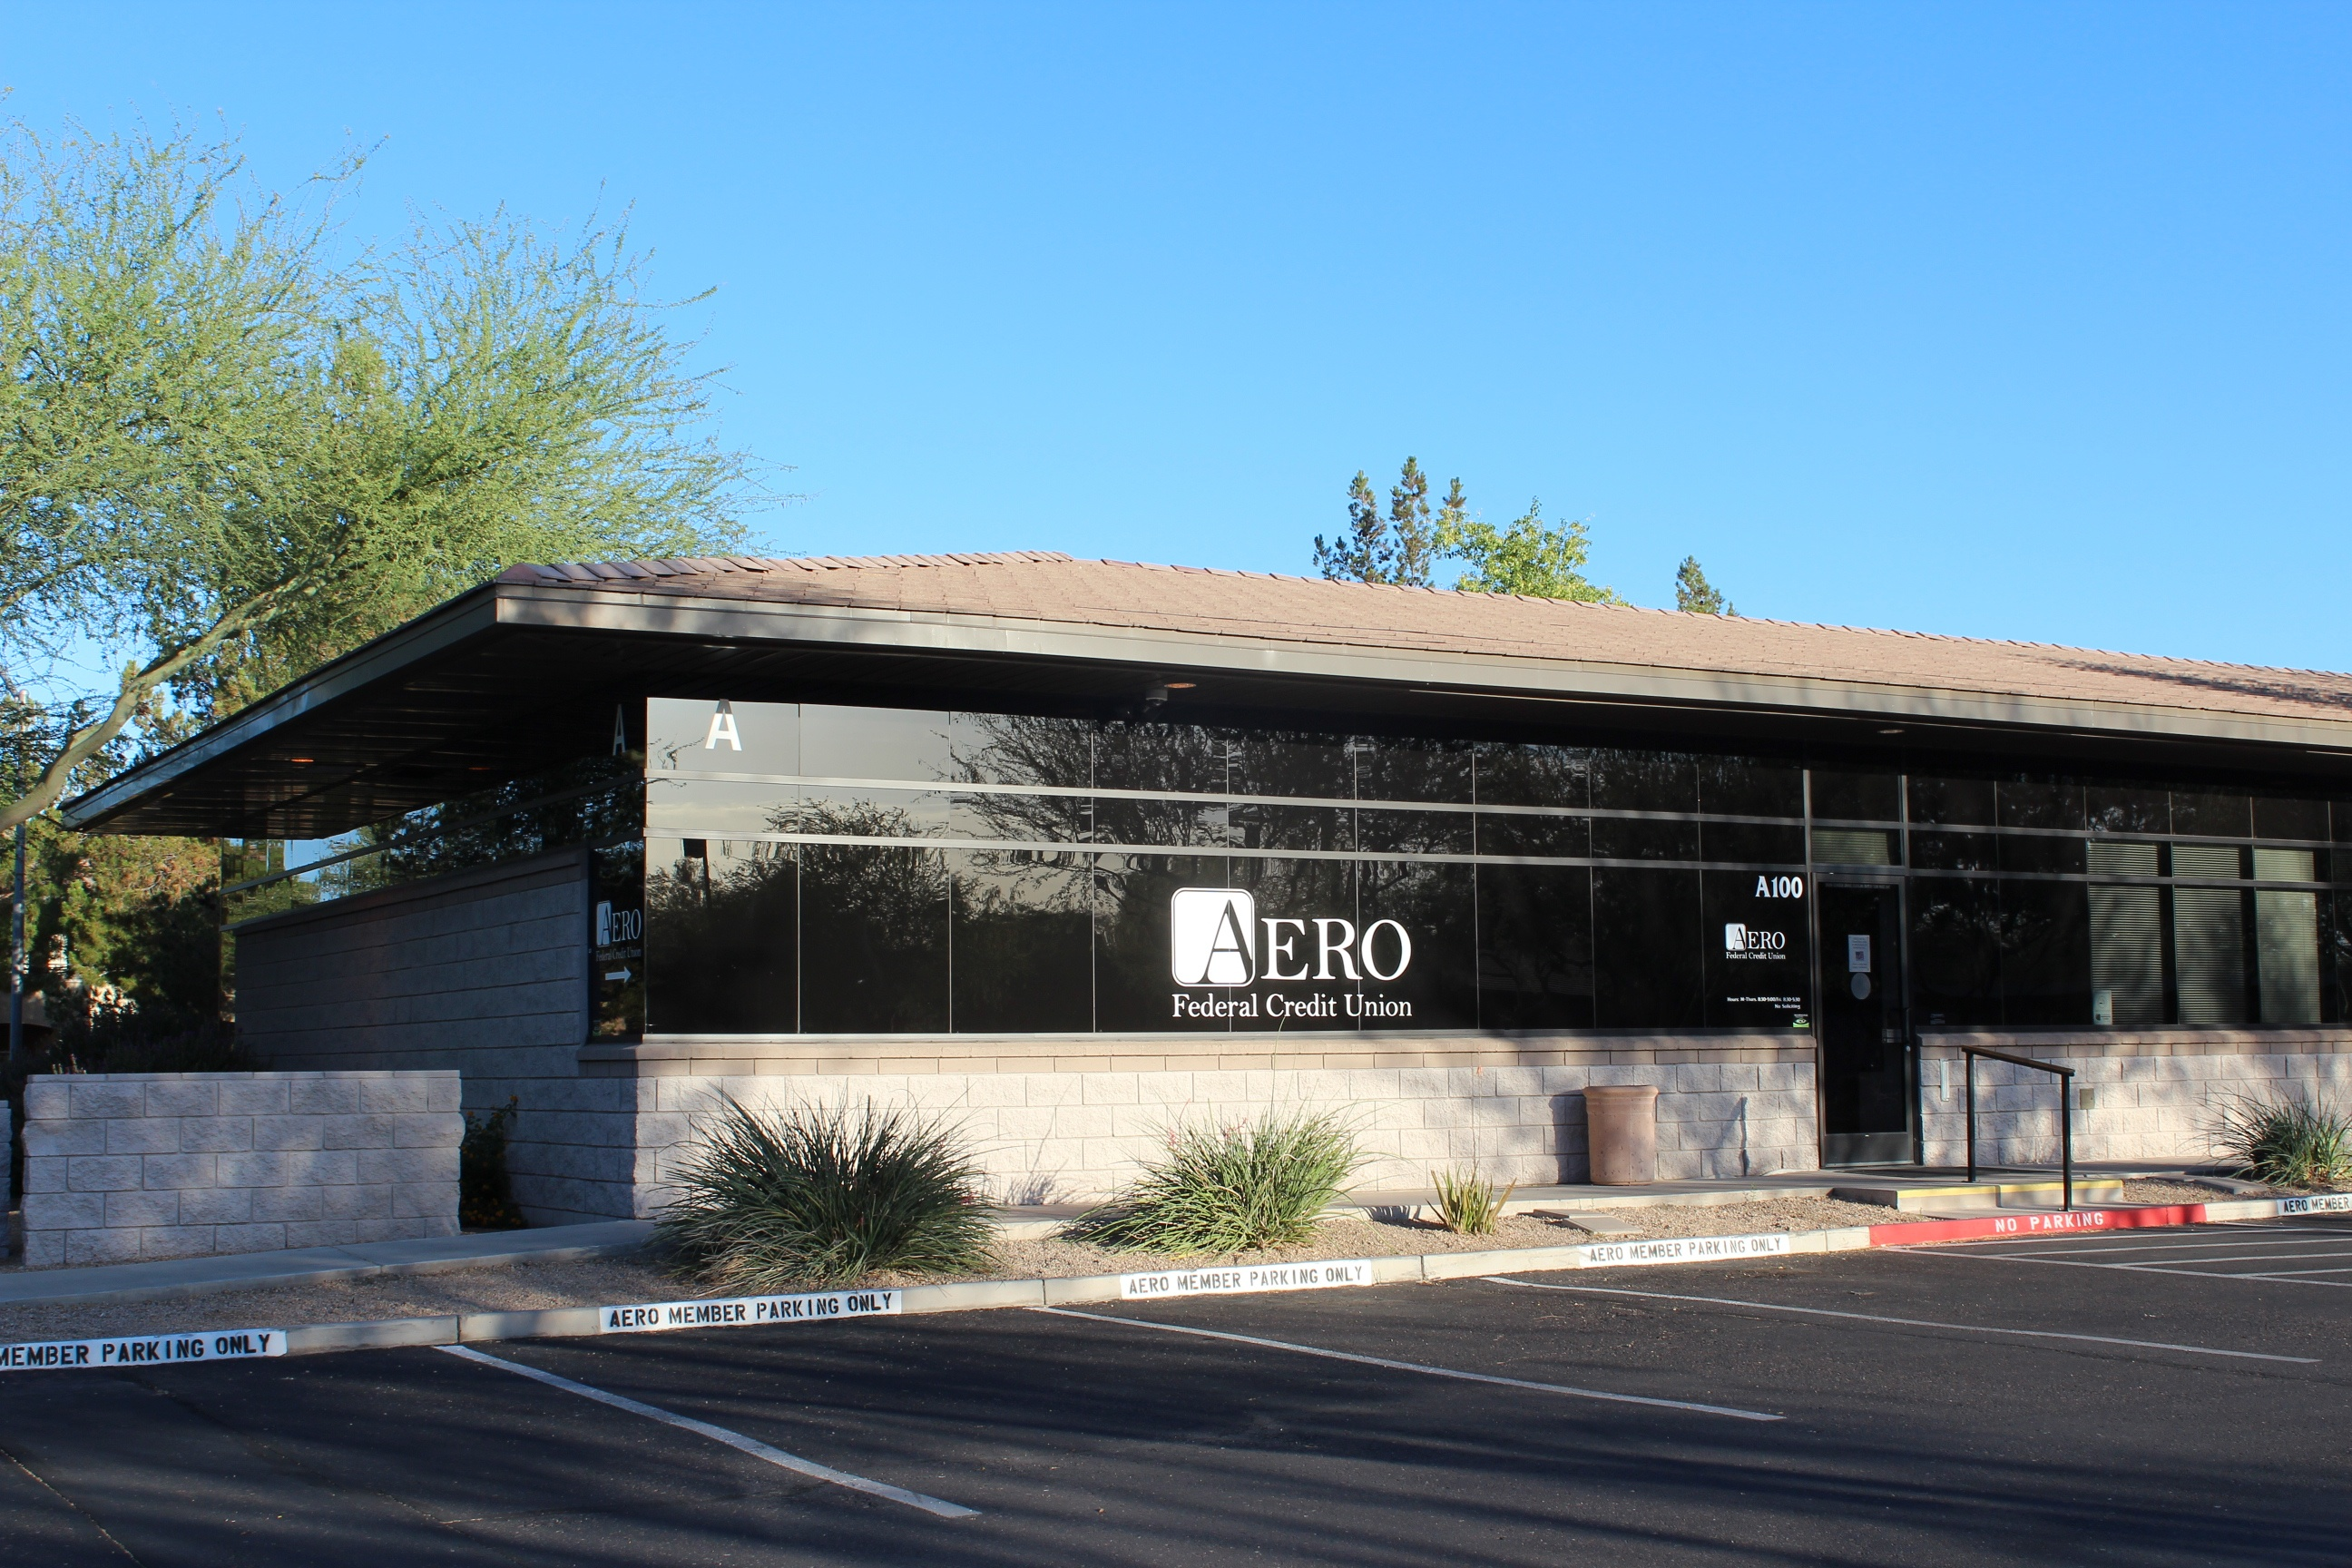 AERO branch location image